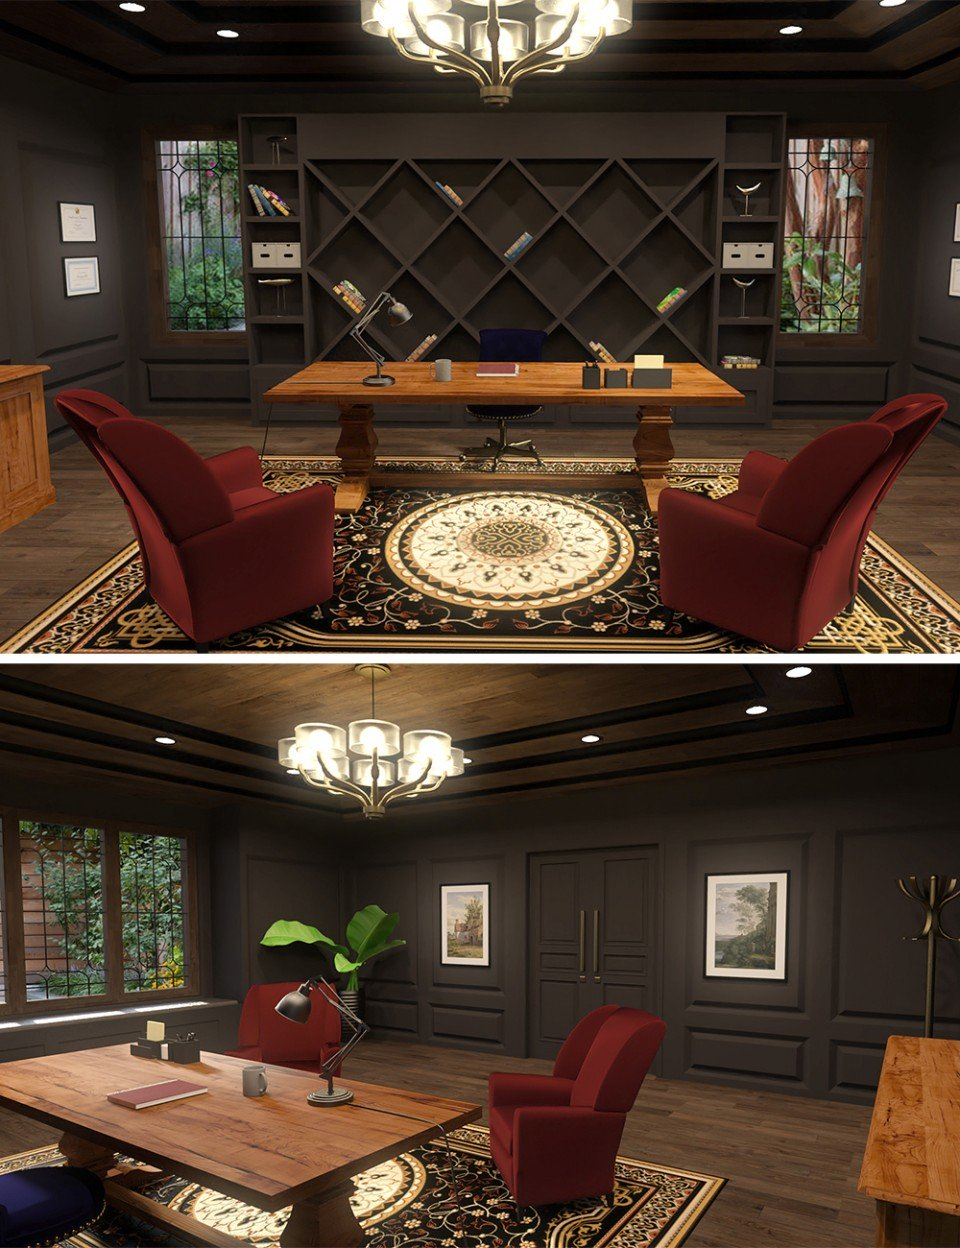 Executive Office_DAZ3D下载站